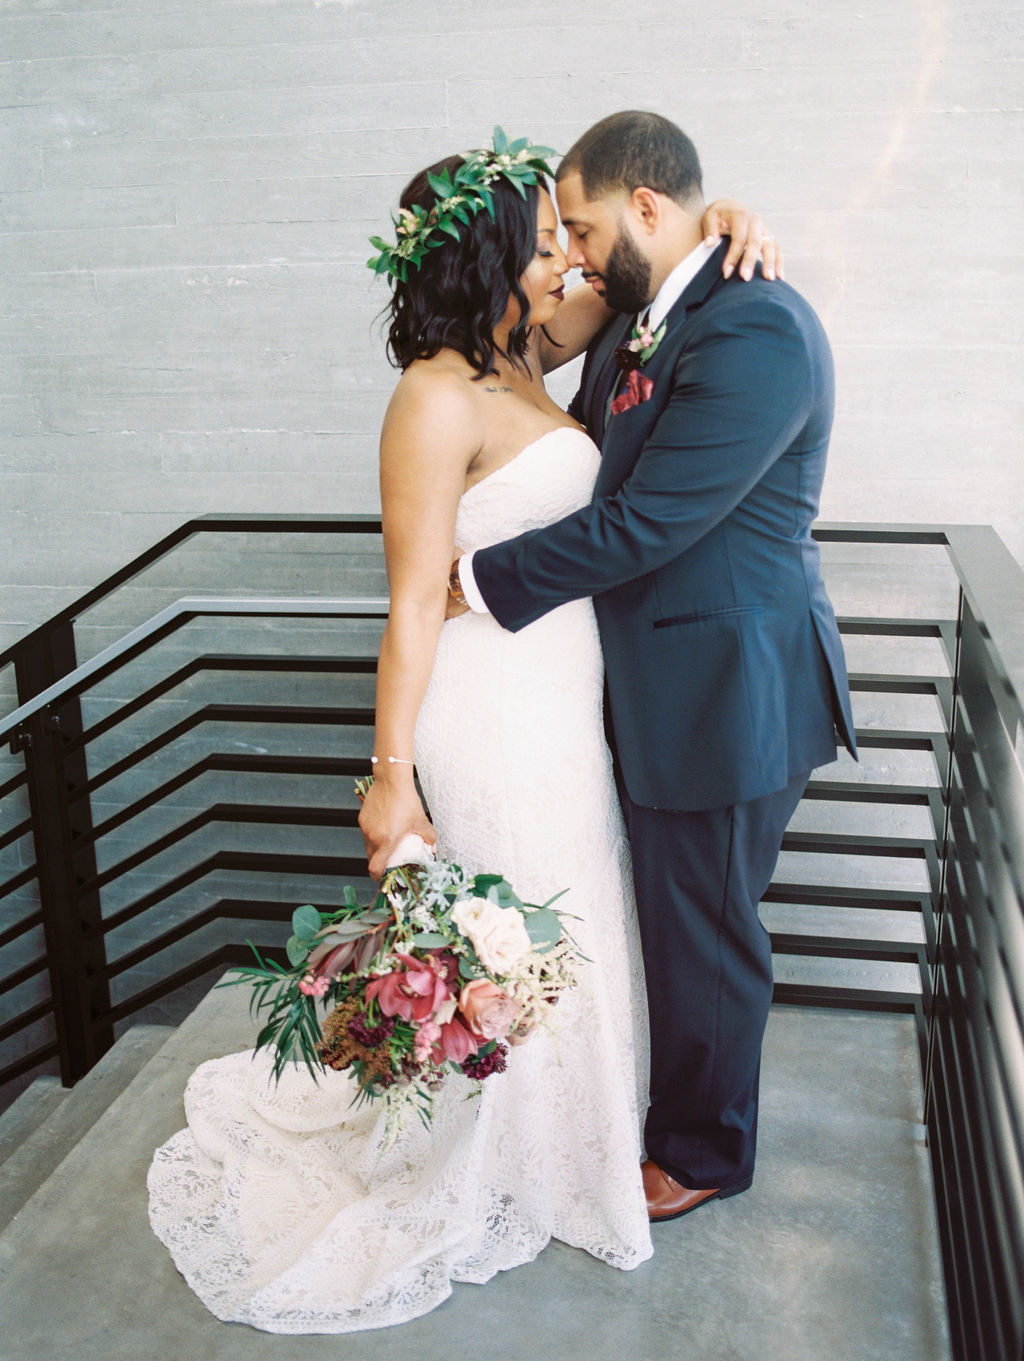 This Garden-Inspired Rooftop Wedding Took Place on a Sunny Morning in Tampa